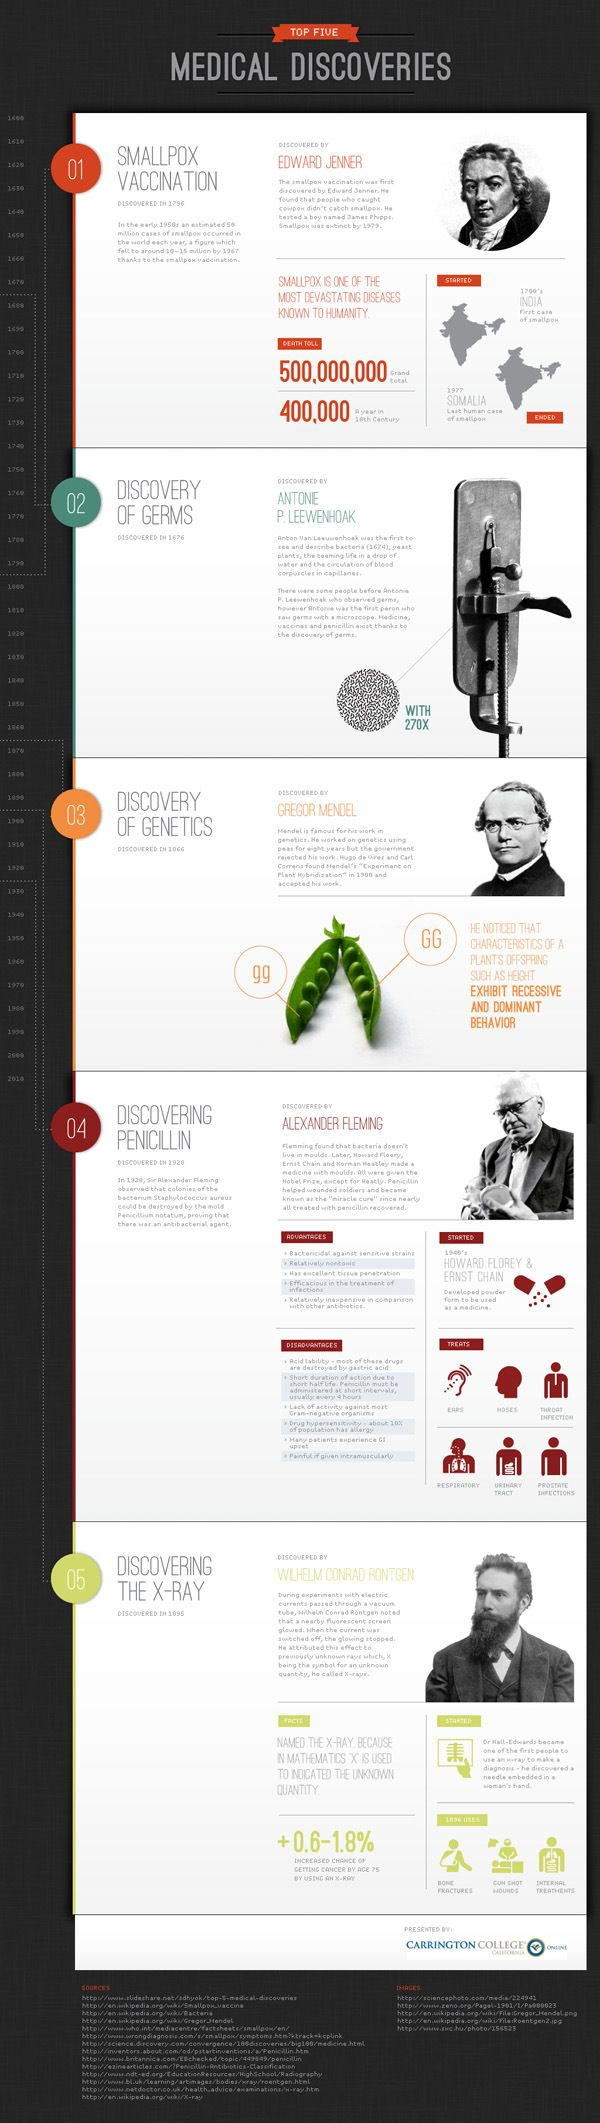 medical discoveries [infographic] | Timeline idea